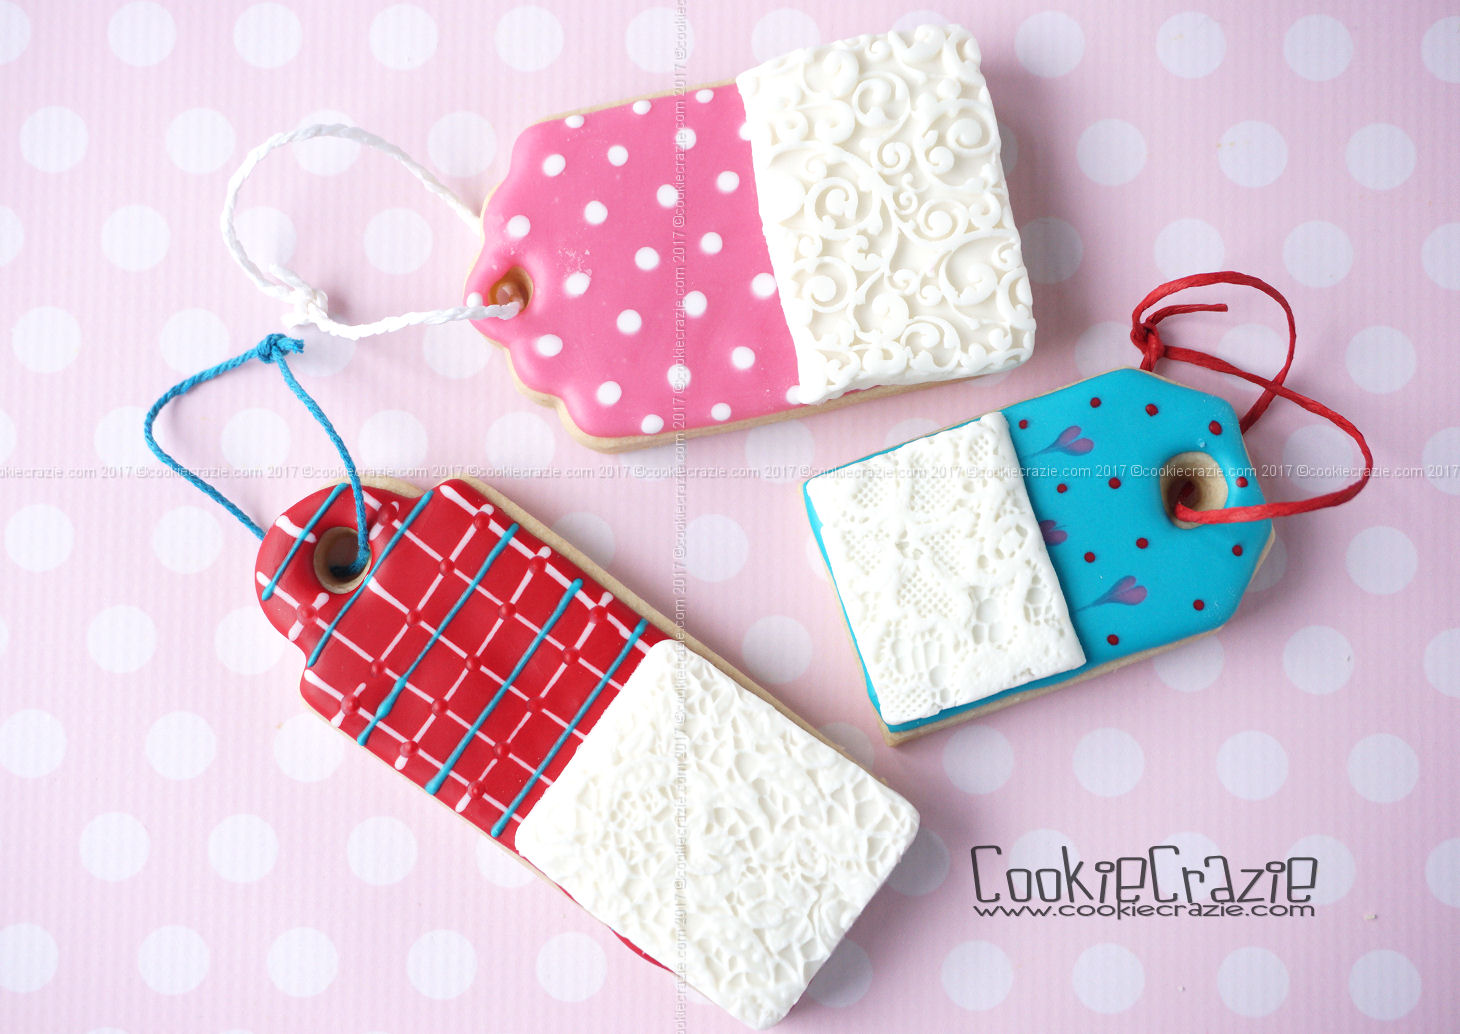 Patterned Lacy Valentine Gift Tag Decorated Cookies YouTube video  HERE